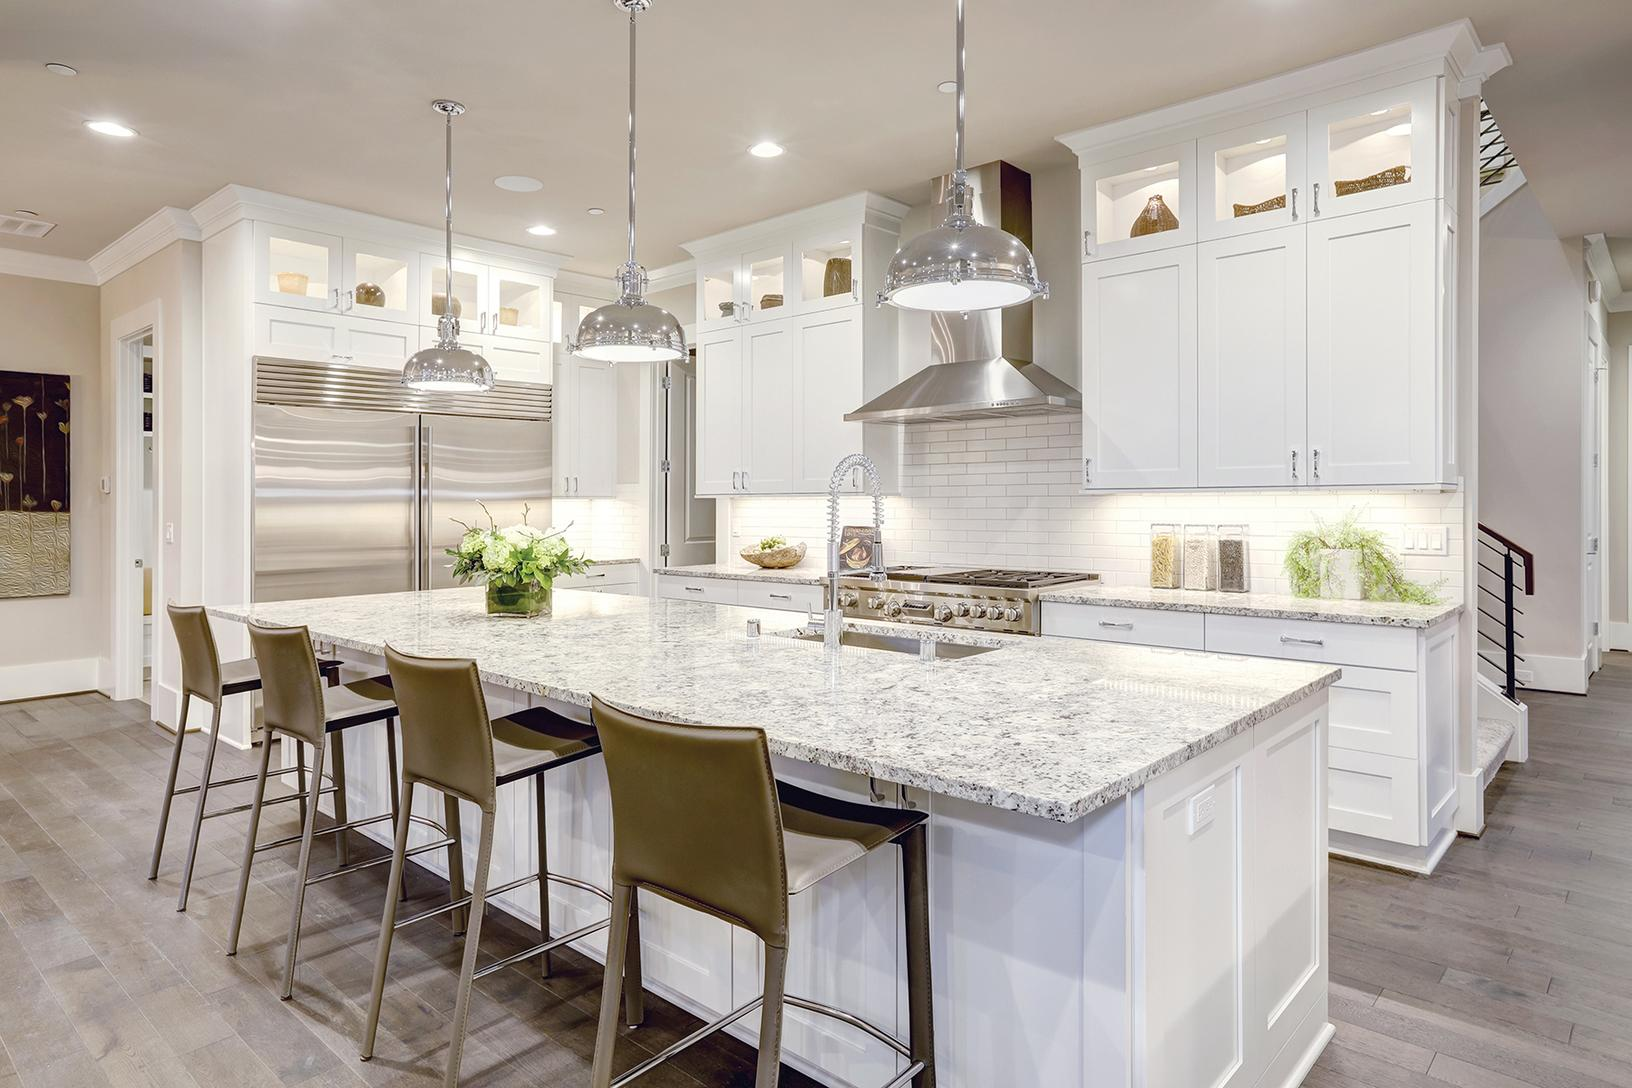 Arrow Renovation Includes New Innovative Kitchen Refacing as More Affordable Option During Pandemic